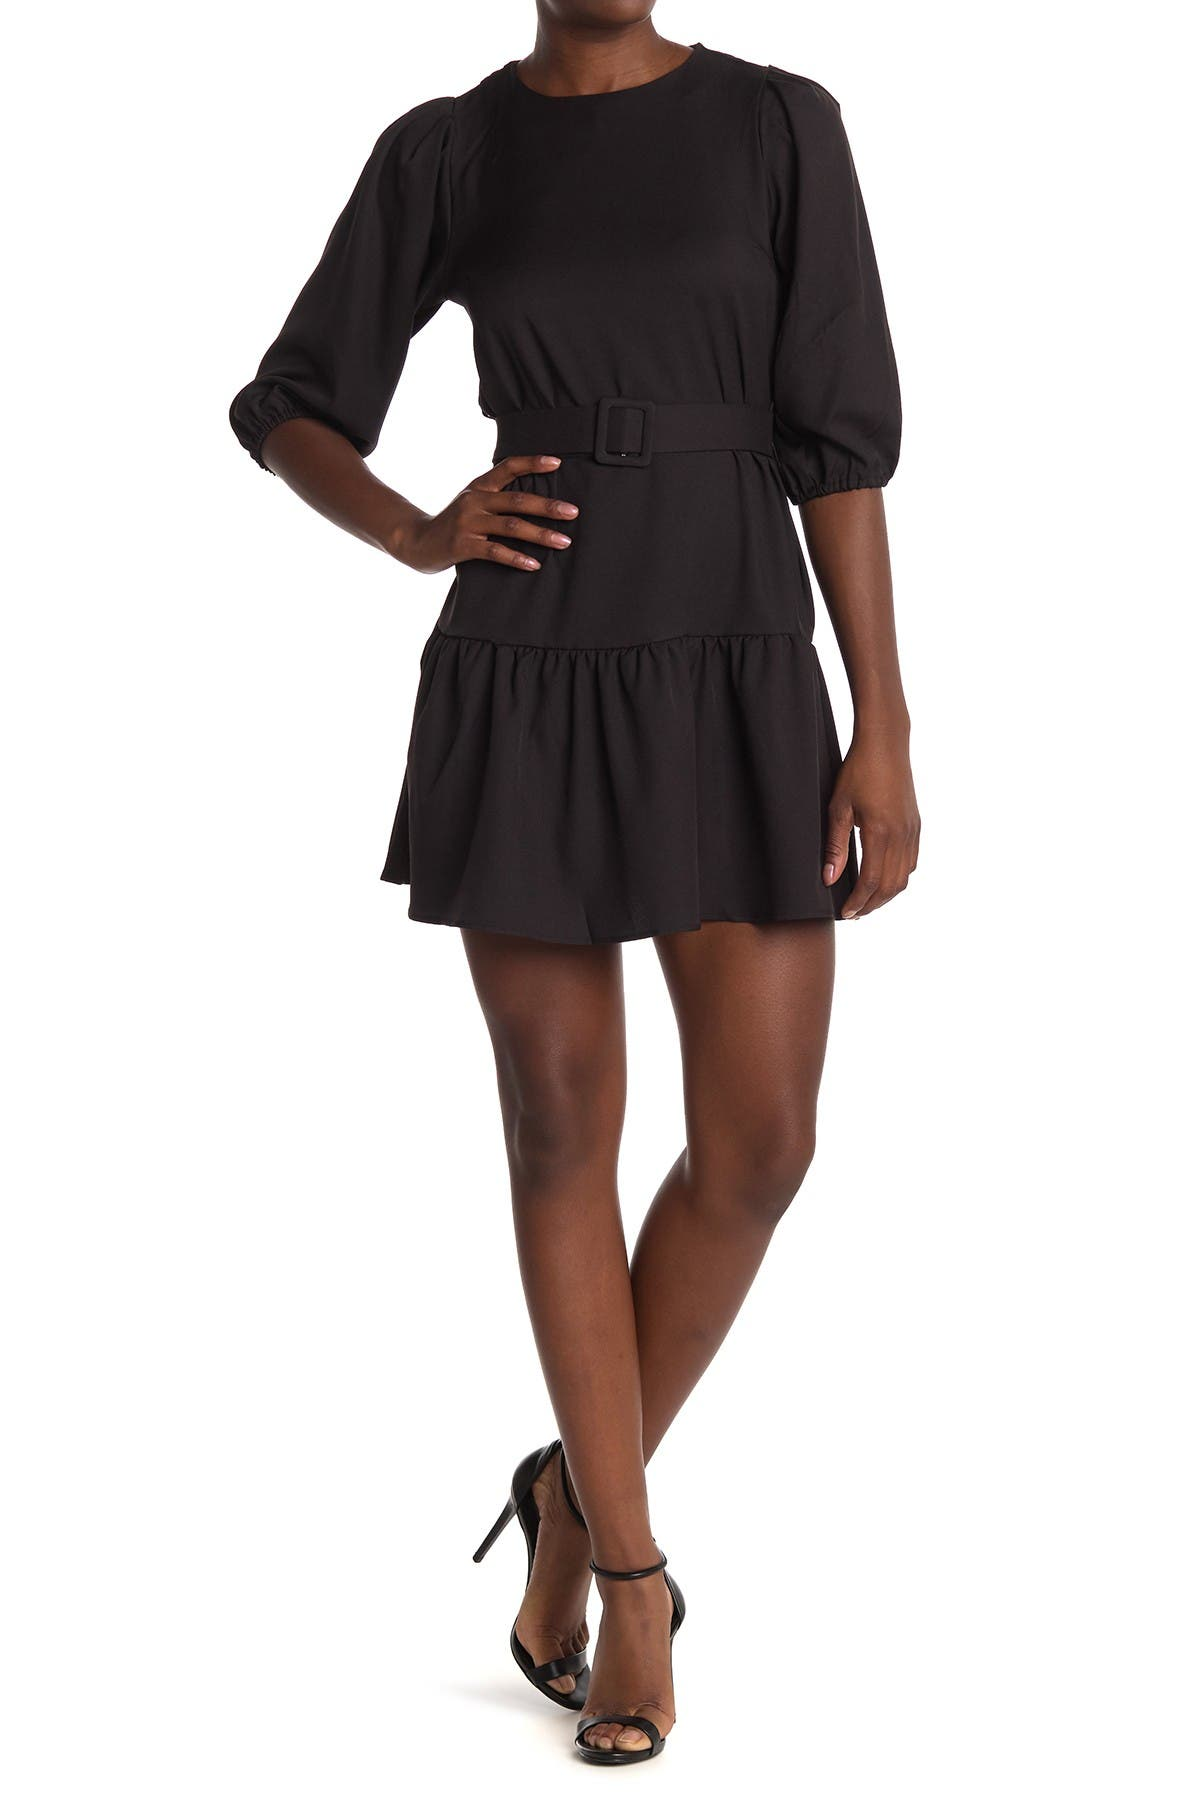 Image of FAVLUX Puff Sleeve Ruffle Dress